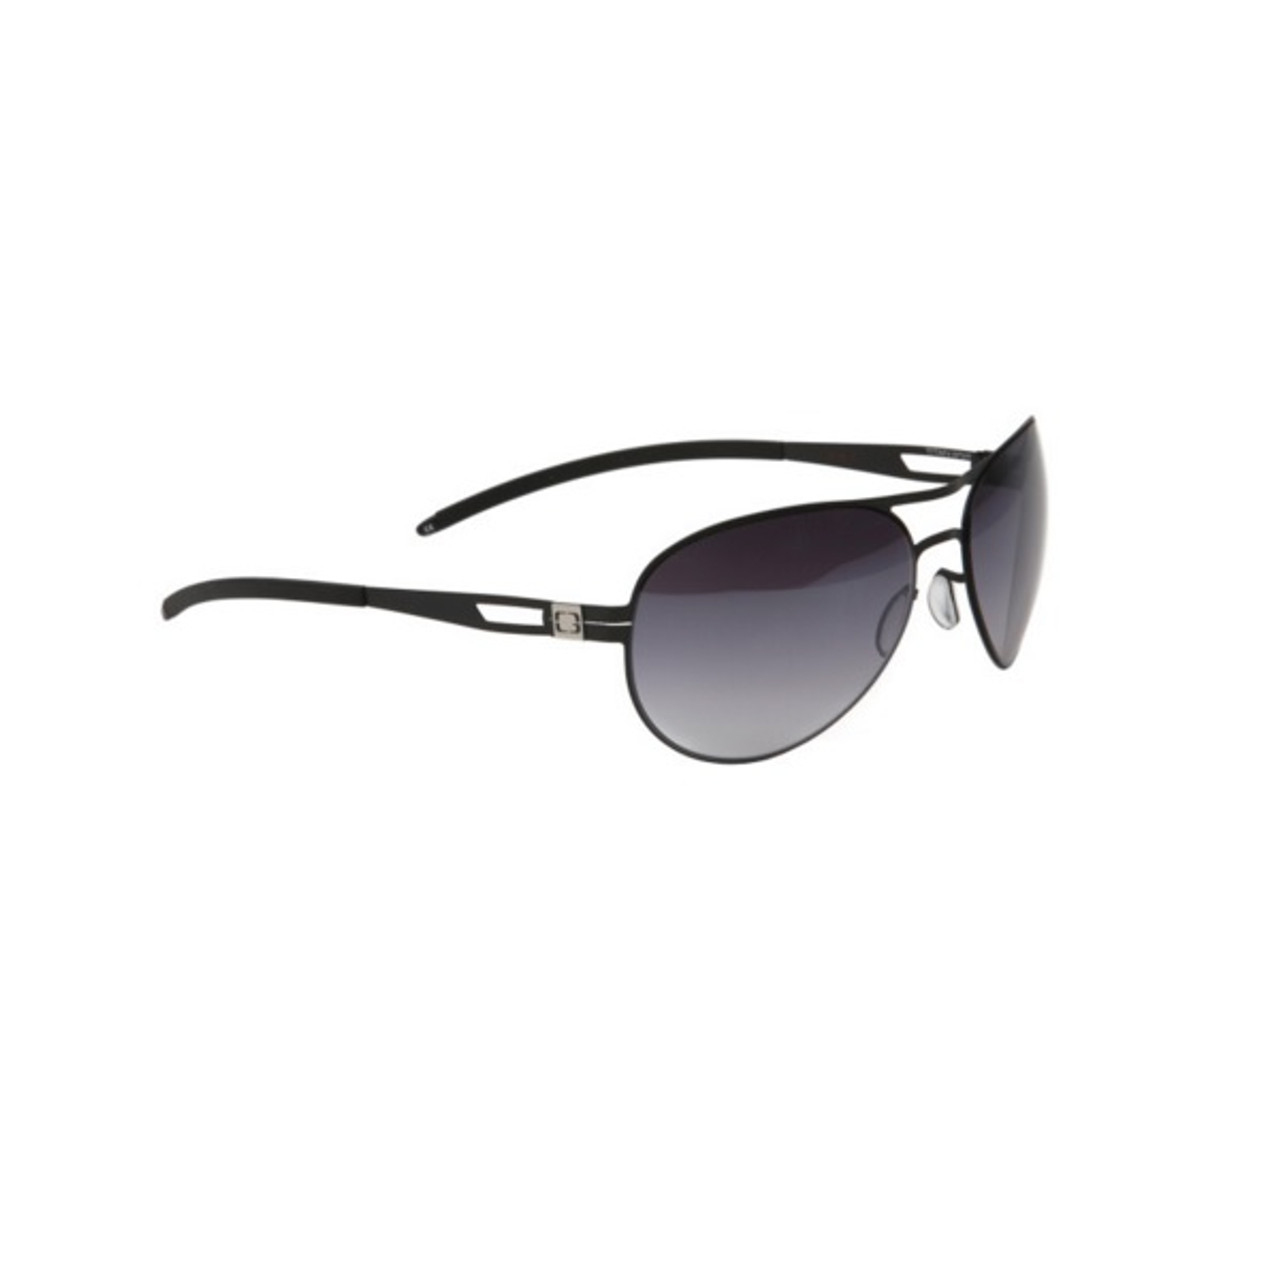 Product image for Gunnar Titan Gradient Grey Onyx Advanced Outdoor Eyewear | CX Computer Superstore